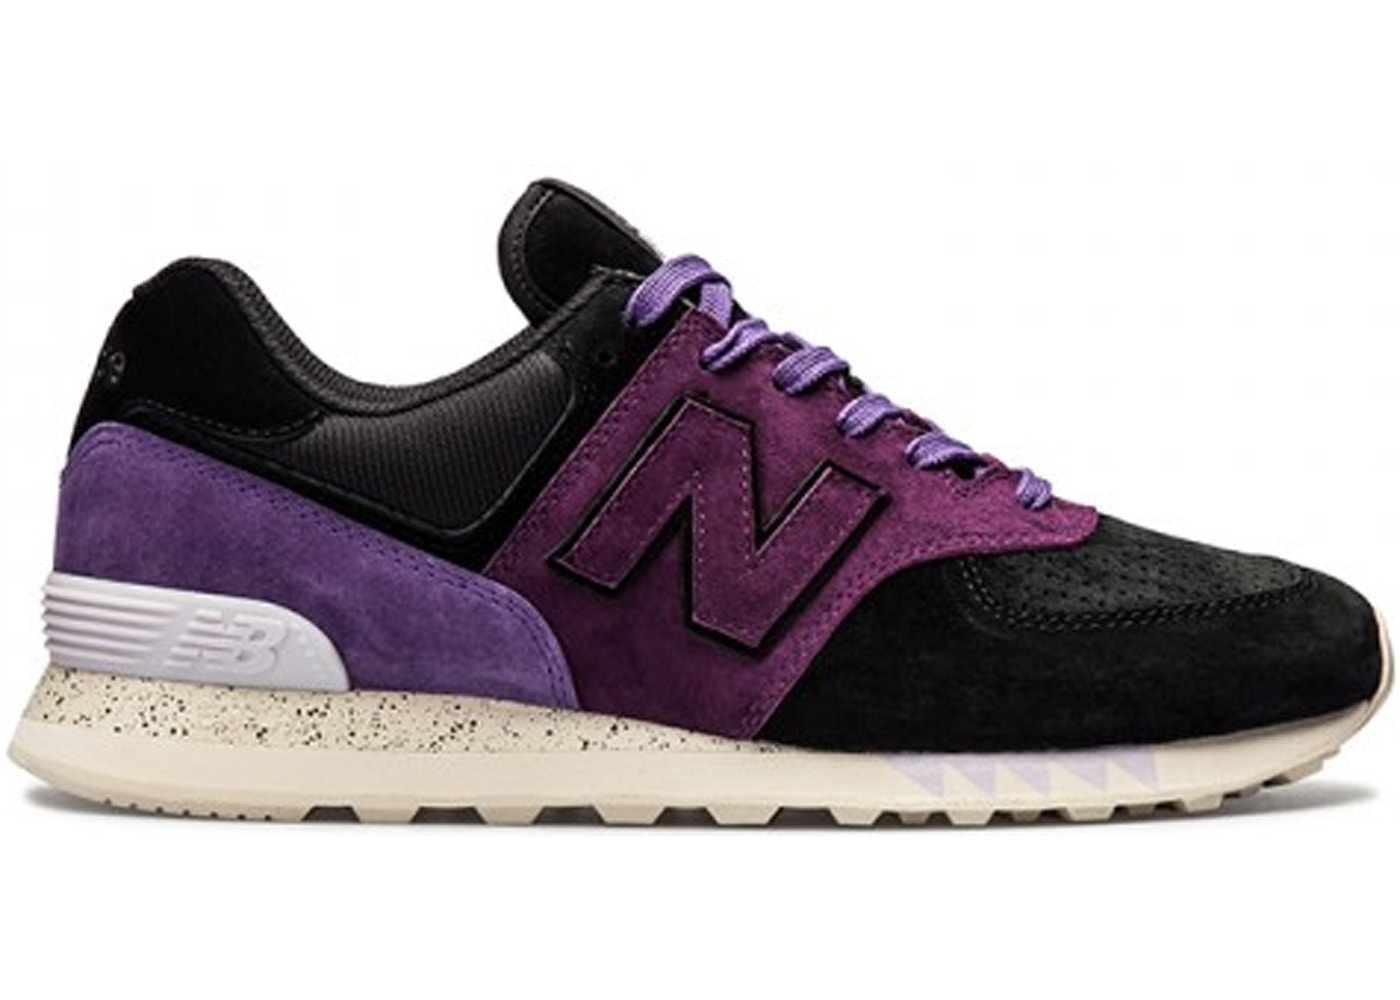 promo code c349a 0d7ae New Balance Size 12 Shoes - Price Premium